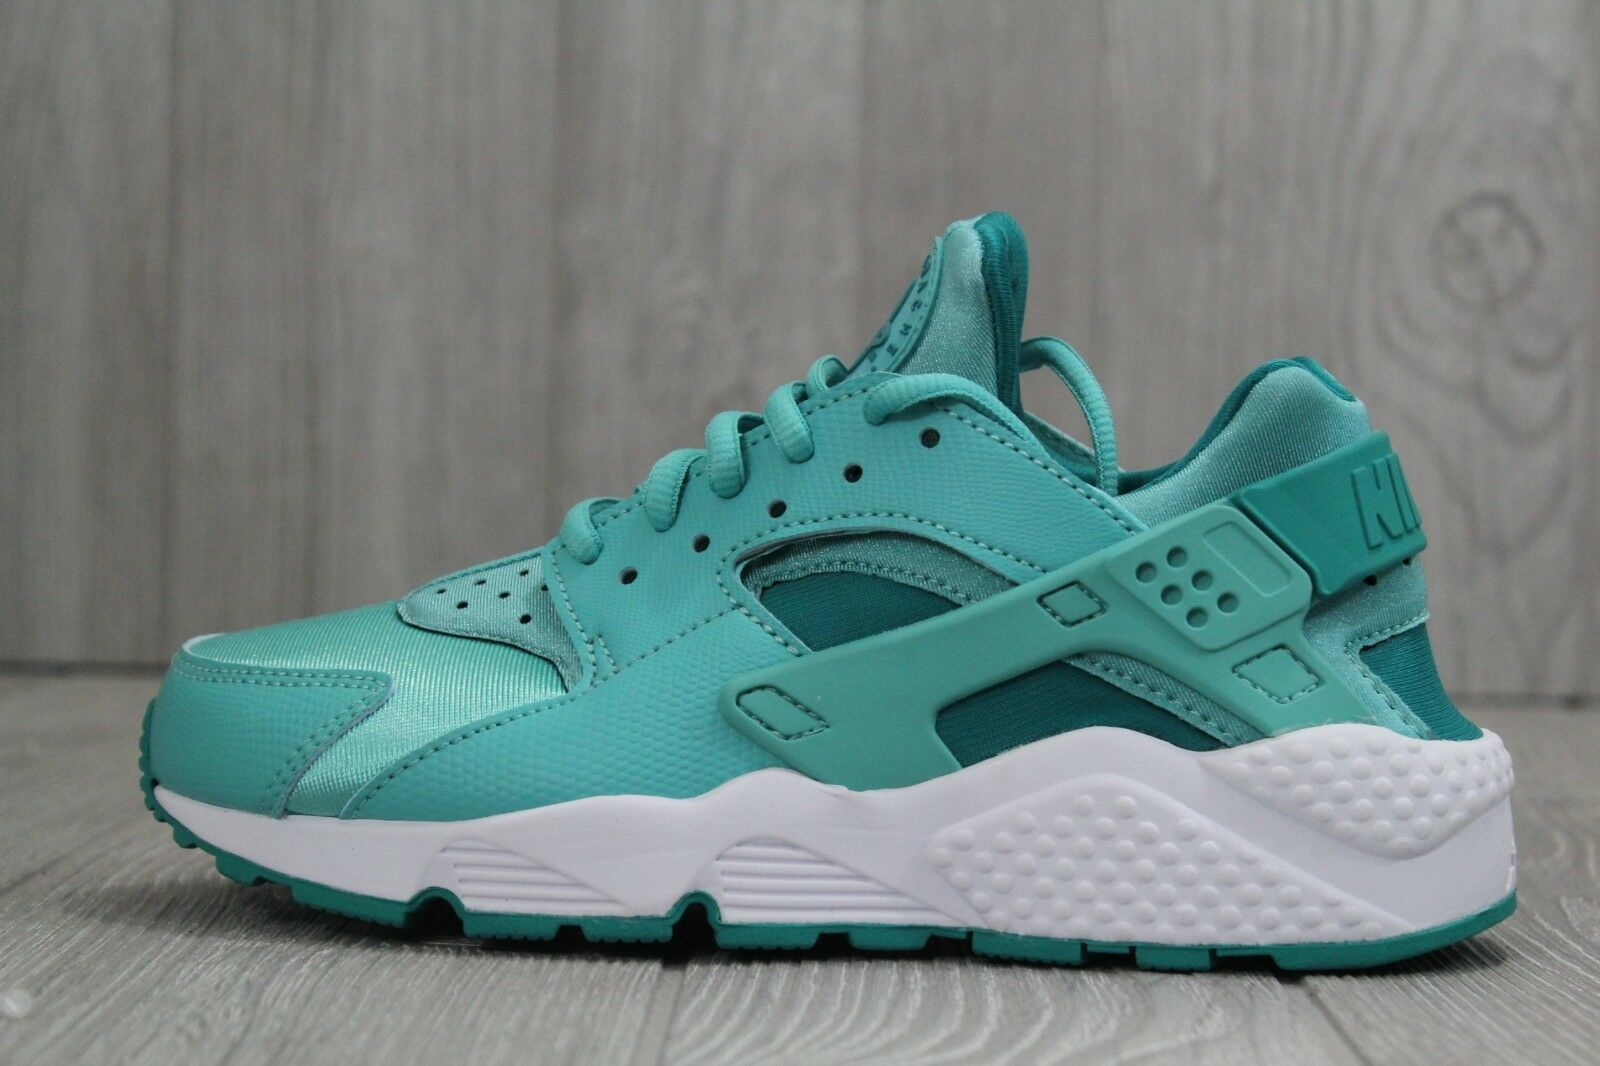 Nike Womens Air Huarache Run 634835-302 Washed Teal Rio/White Shoes Sz 6.5 best-selling model of the brand